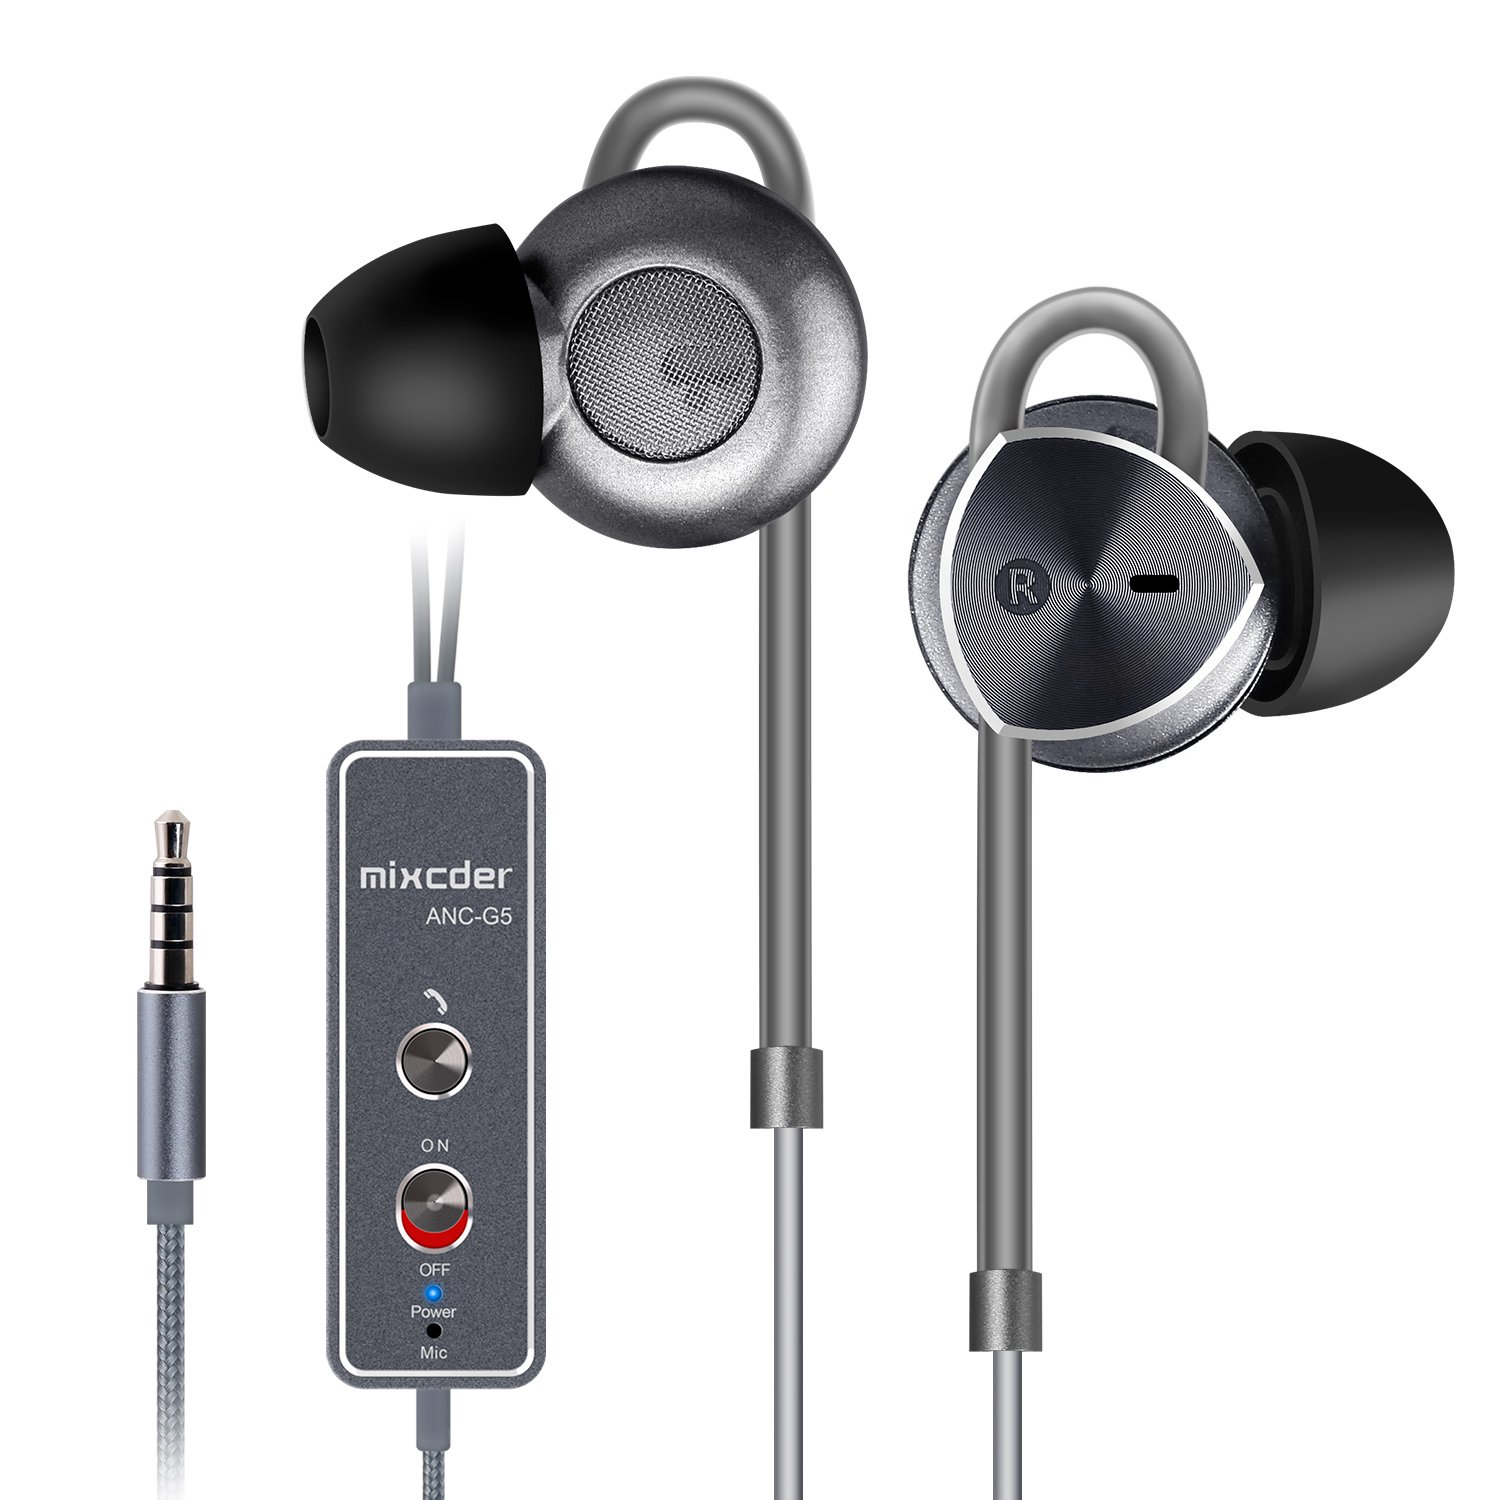 Active Noise Cancelling Headphones, Mixcder ANC-G5 Hi-Fi Stereo Sound In-ear Earbuds Hand-free Calling Hesdsets with Built-in Mic and Travel Case